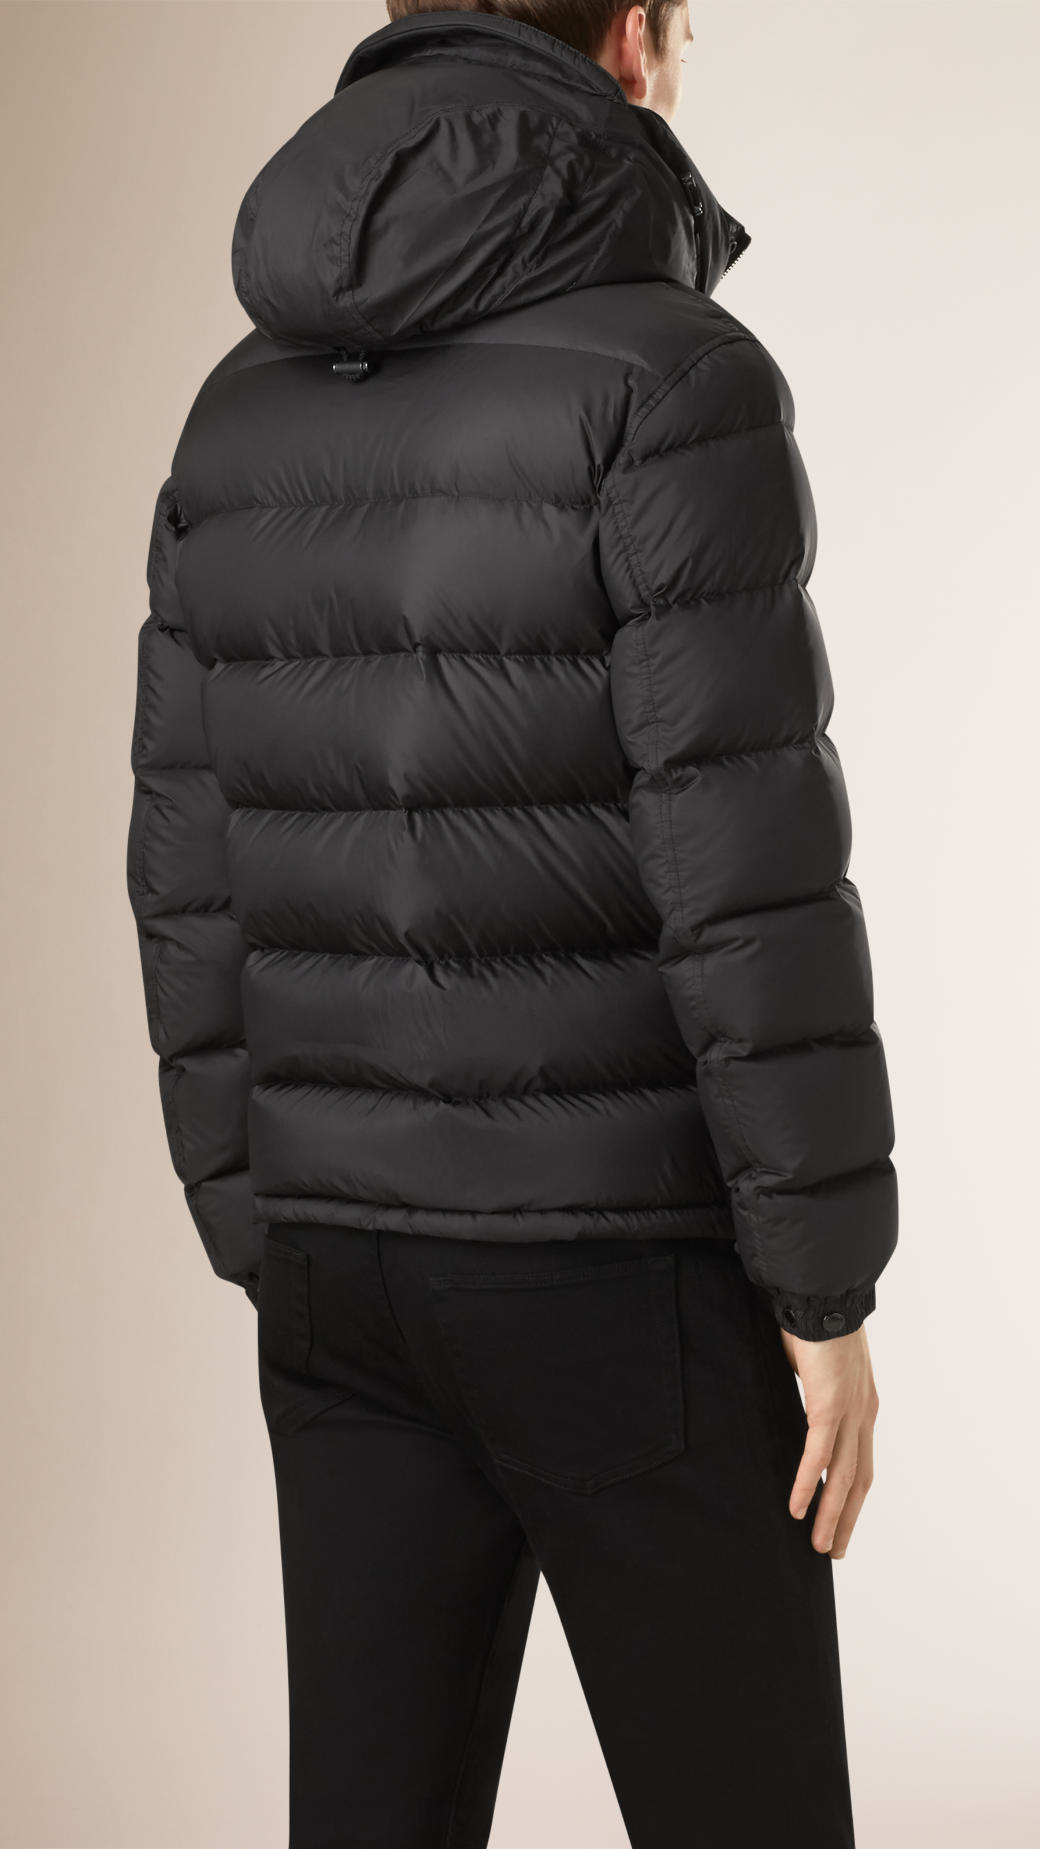 Burberry Lightweight Down-filled Puffer Jacket in Black for Men | Lyst